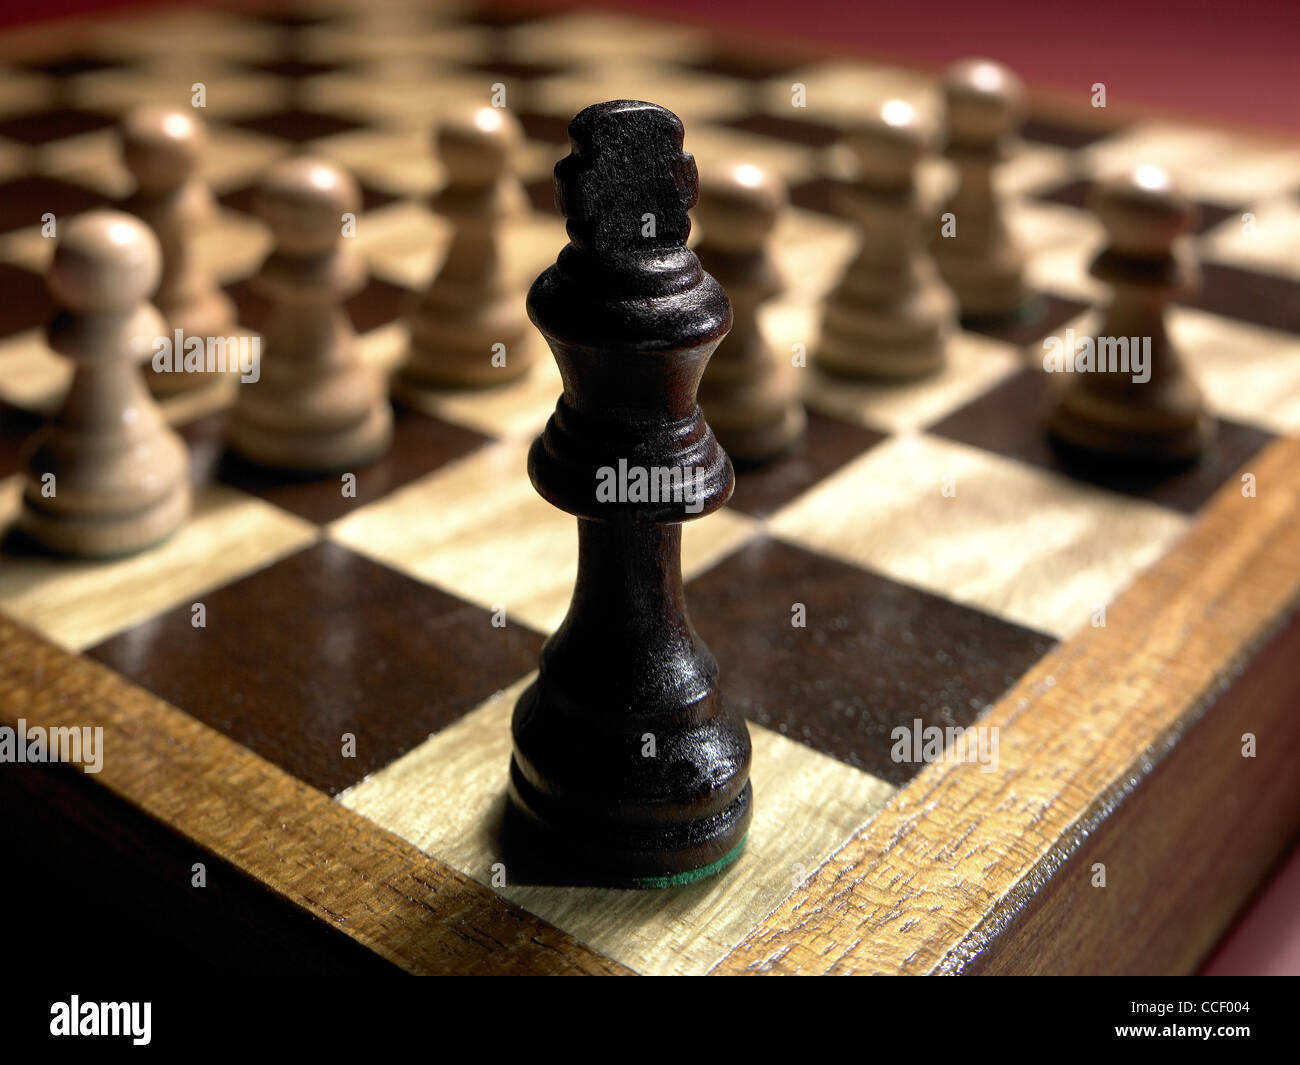 Chess pieces on a chessboard - Stock Image